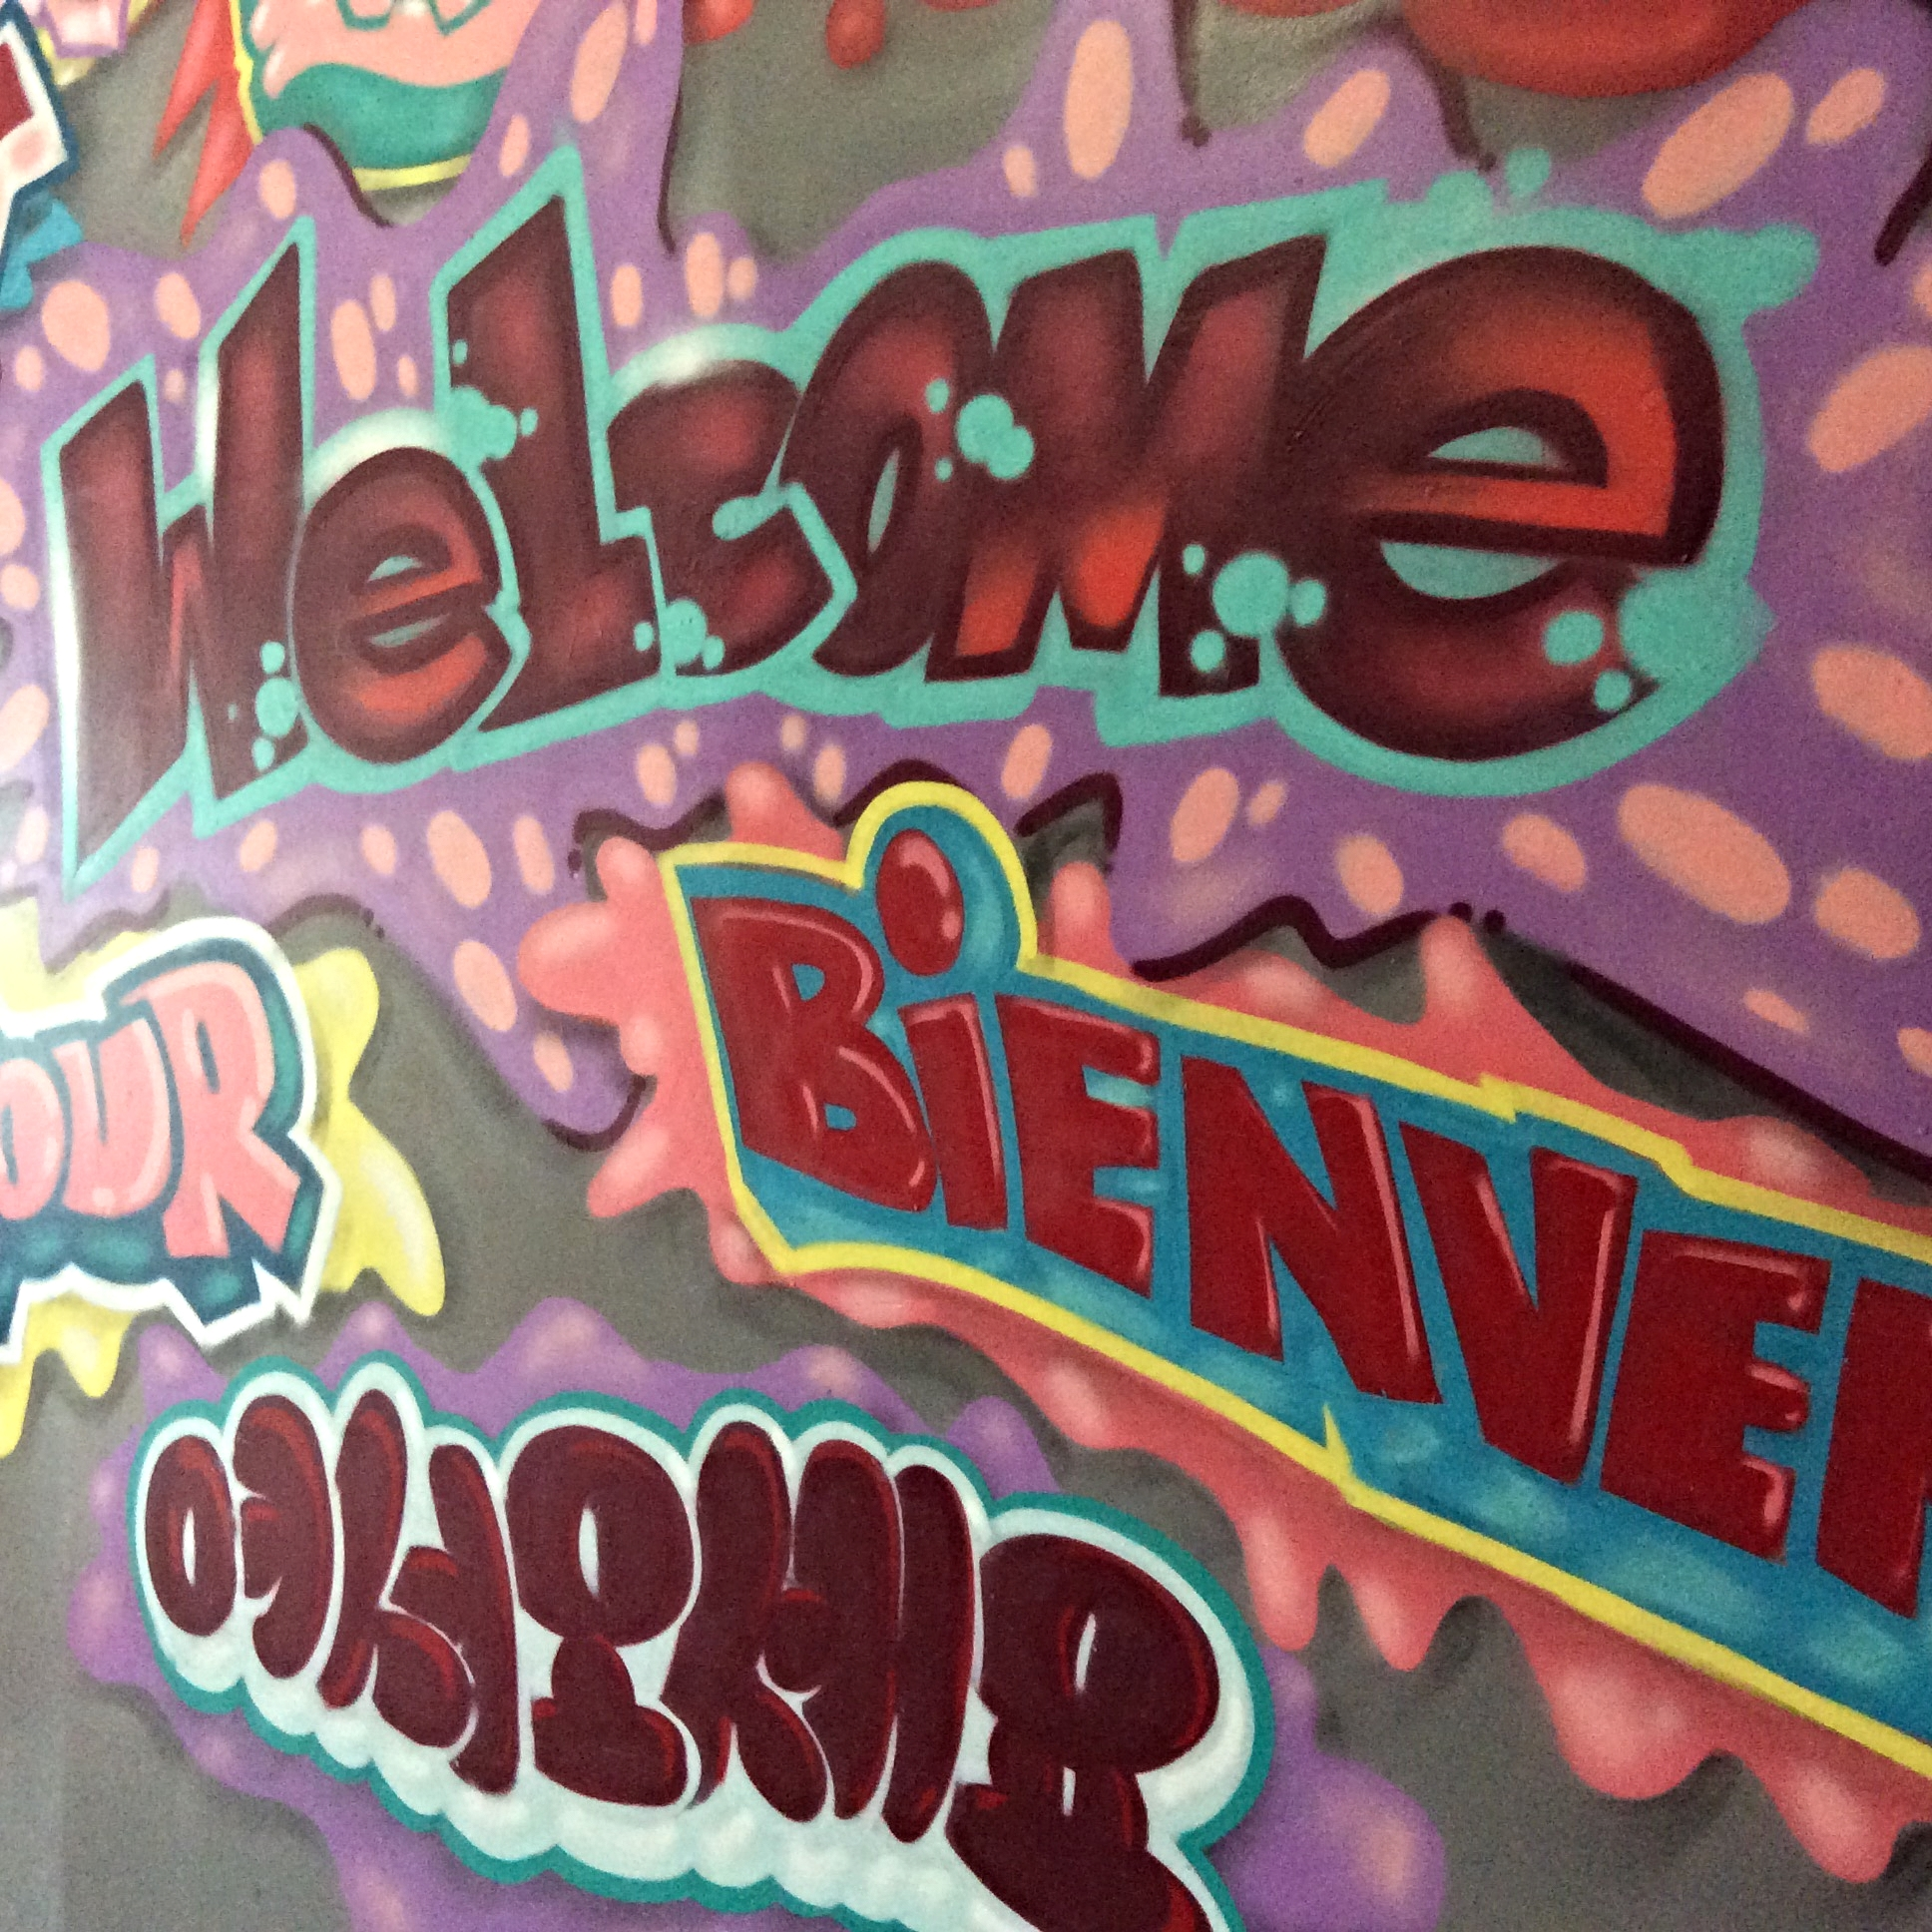 Graffiti and street art are in great abundance both at the hostel and in the immediate neighbourhood around the hostel. This image captures amultilingual welcome to New York.